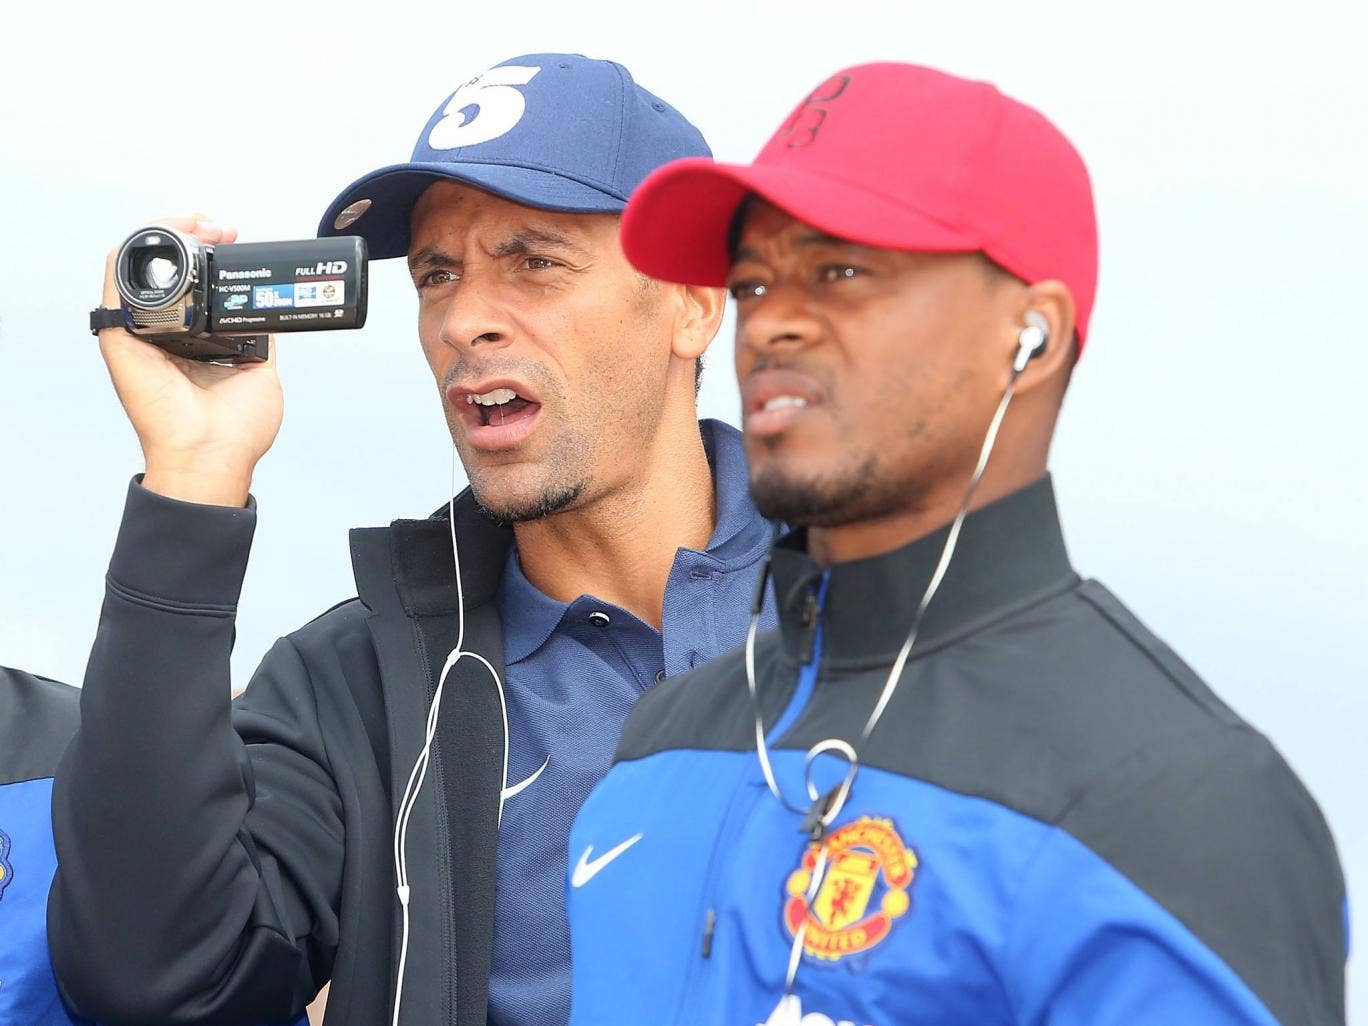 Rio Ferdinand and Patrice Evra of Manchester United visits Manley Beach as part of their pre-season tour